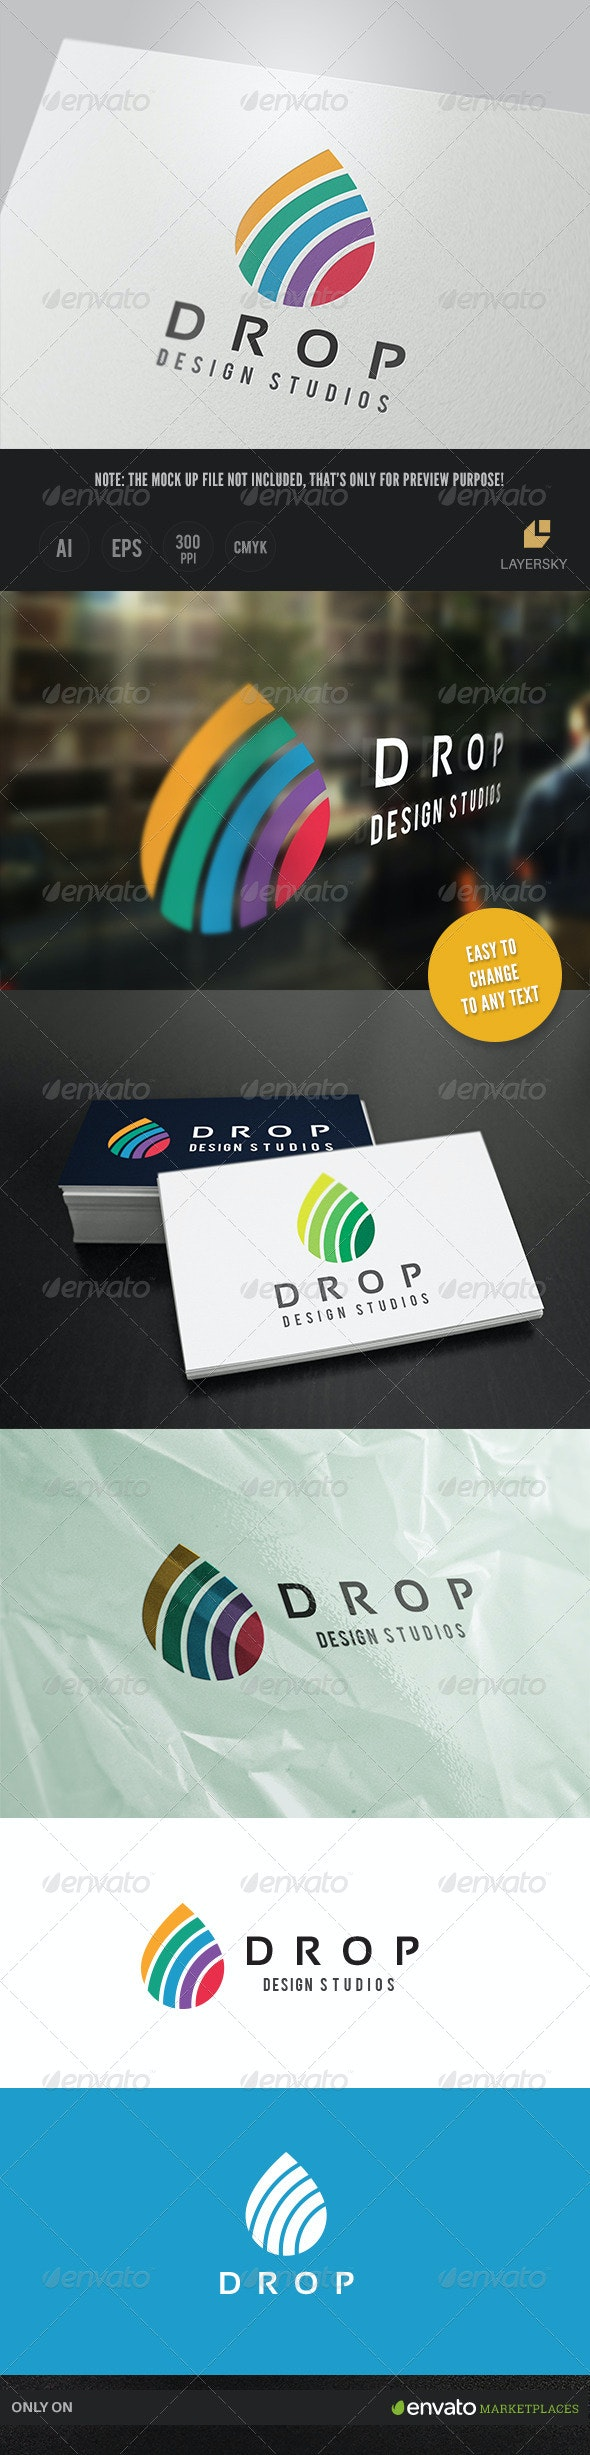 Drop Design Studios - Nature Logo Templates